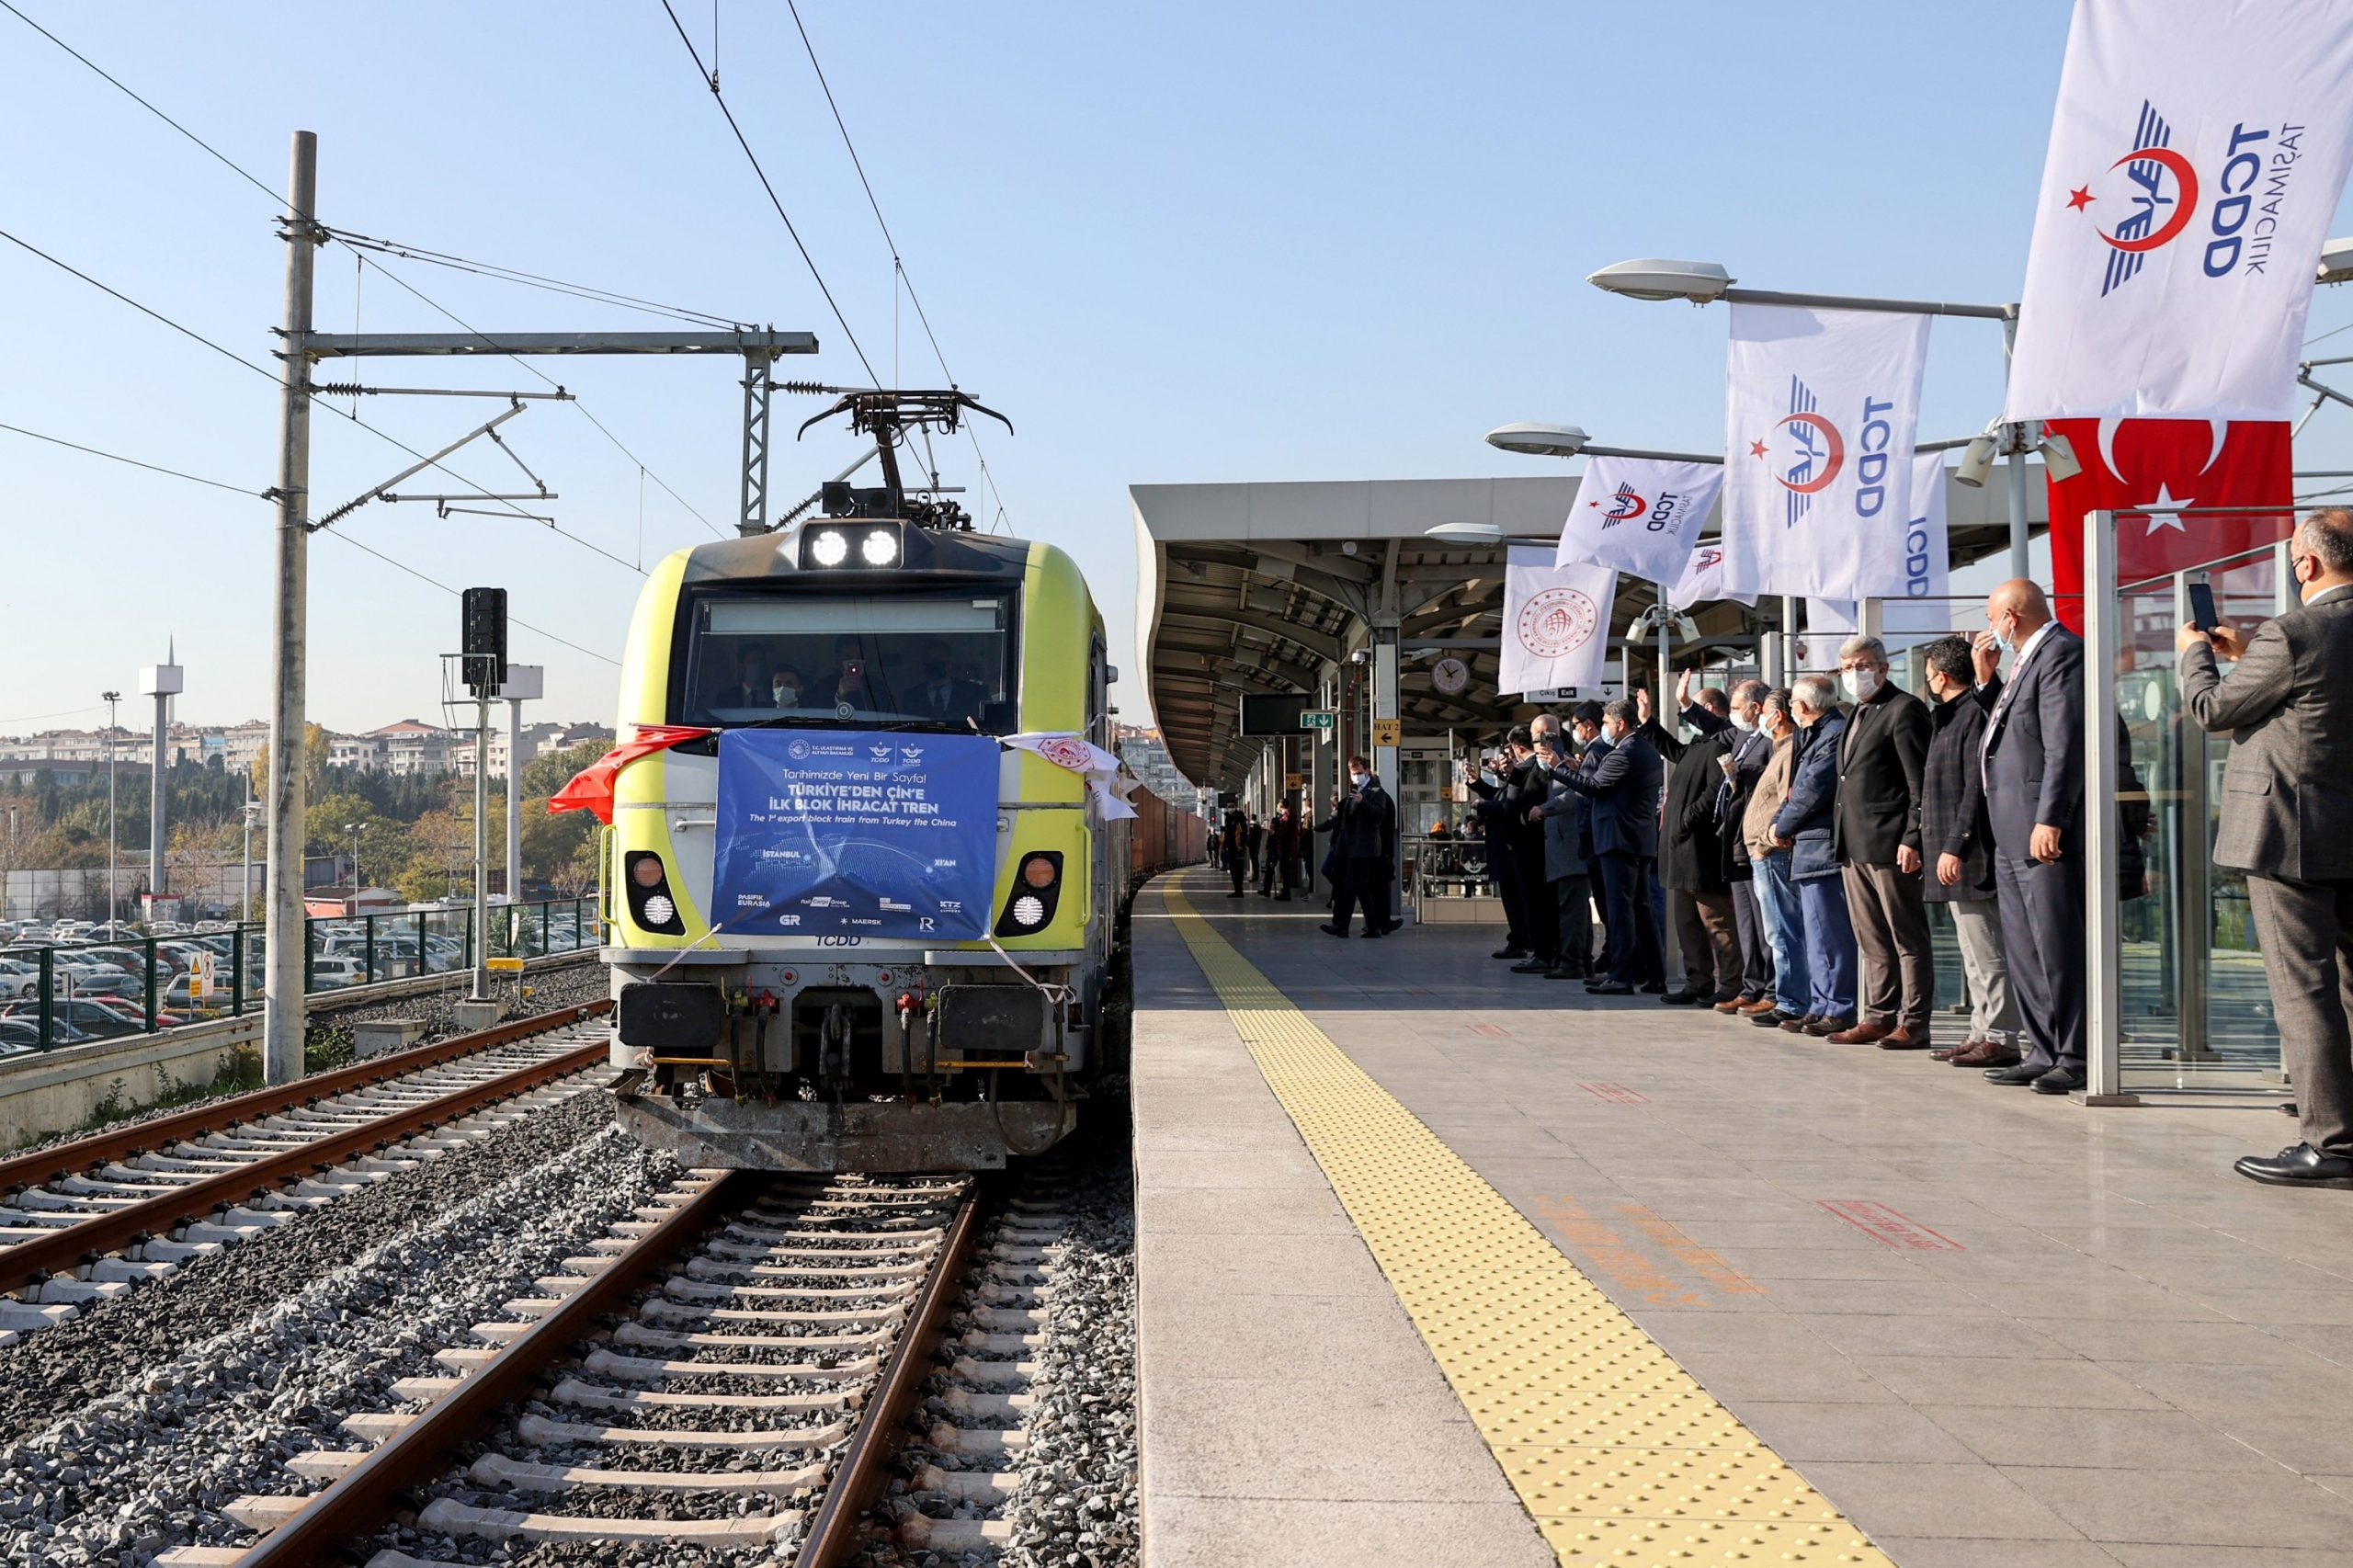 845 freight trains pass Istanbul's Europe-to-Asia subsea tunnel